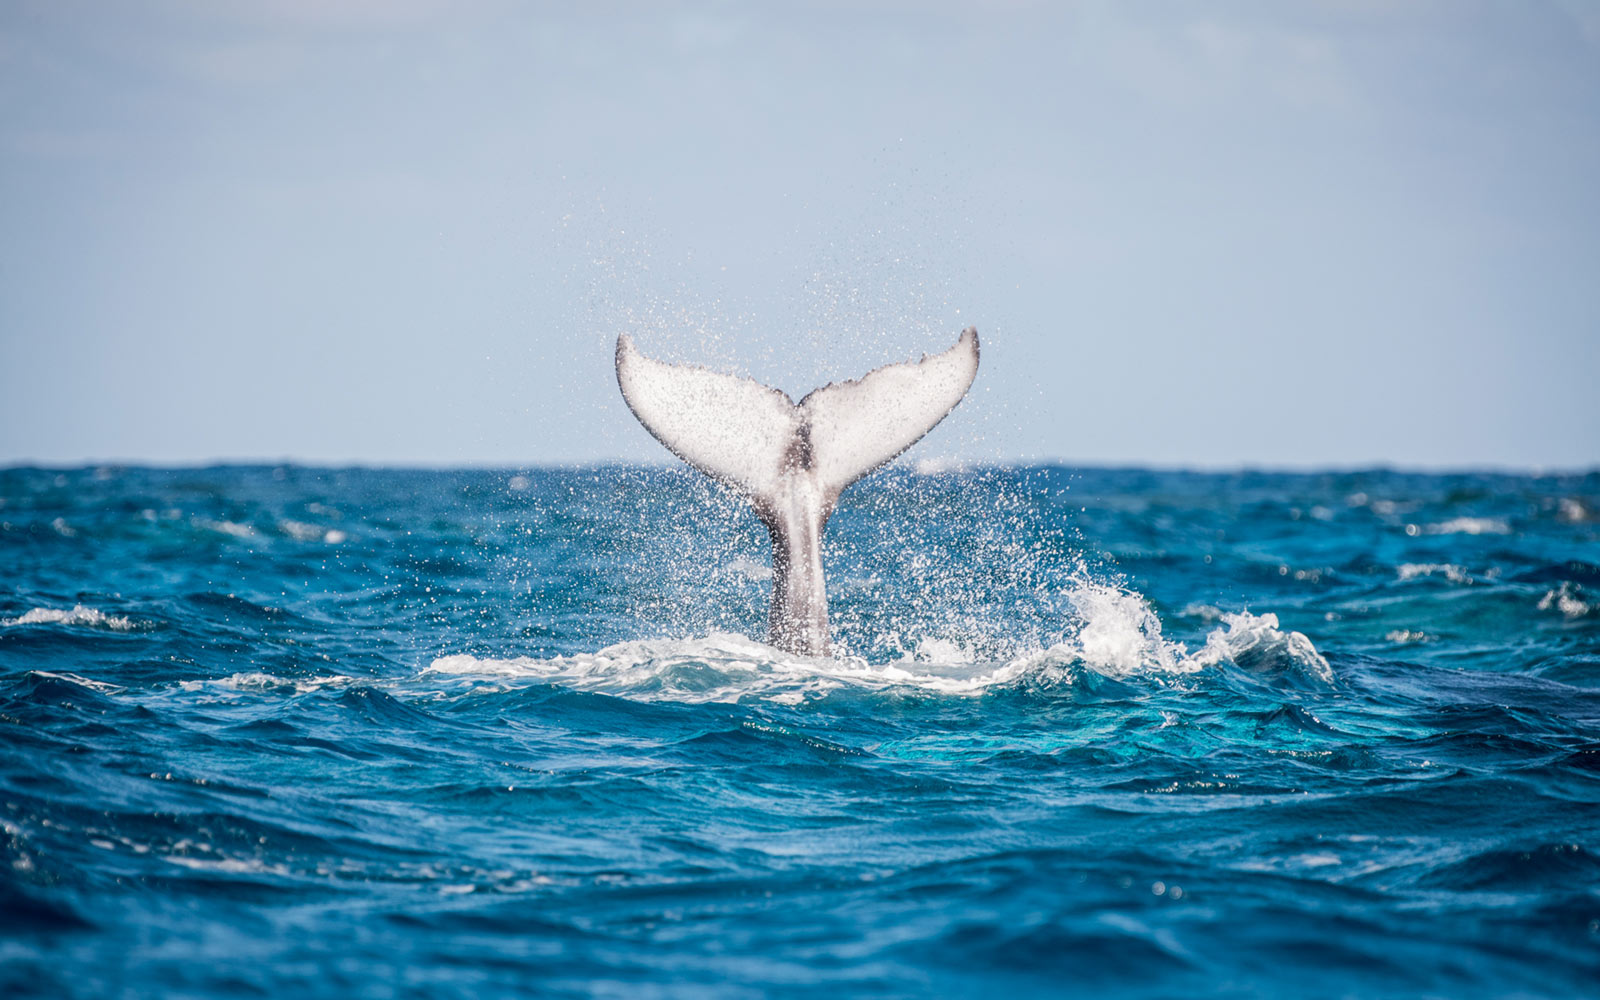 A Dominican Republic Cruise With Aquatic Adventures Lets You Swim with Humpback Whales